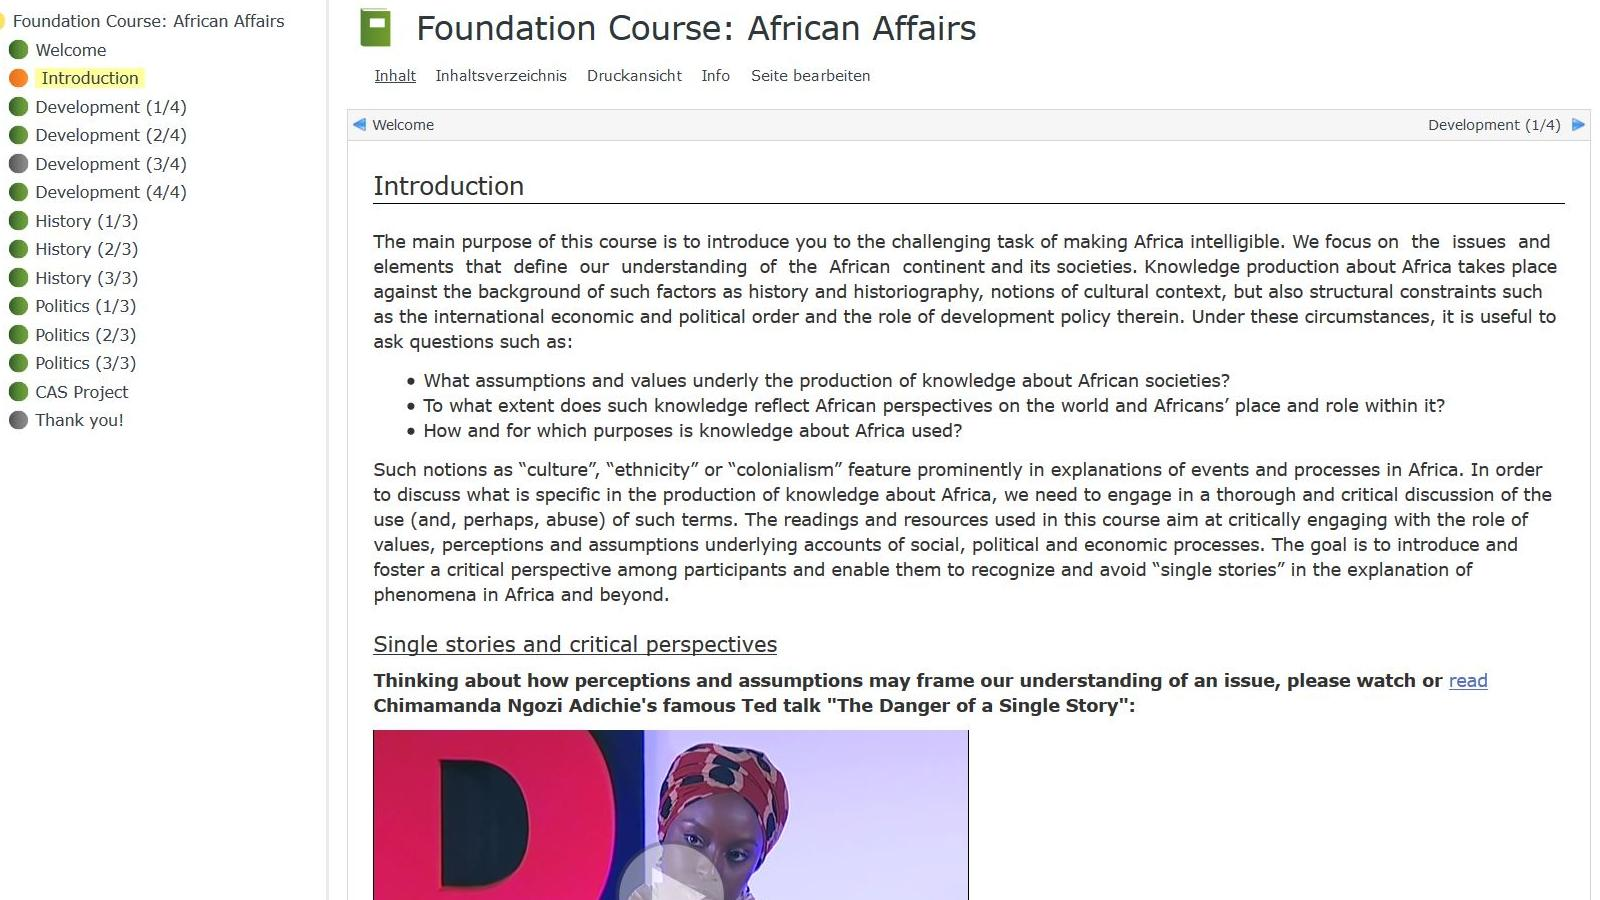 [Translate to English:] Snapshot: Foundation course